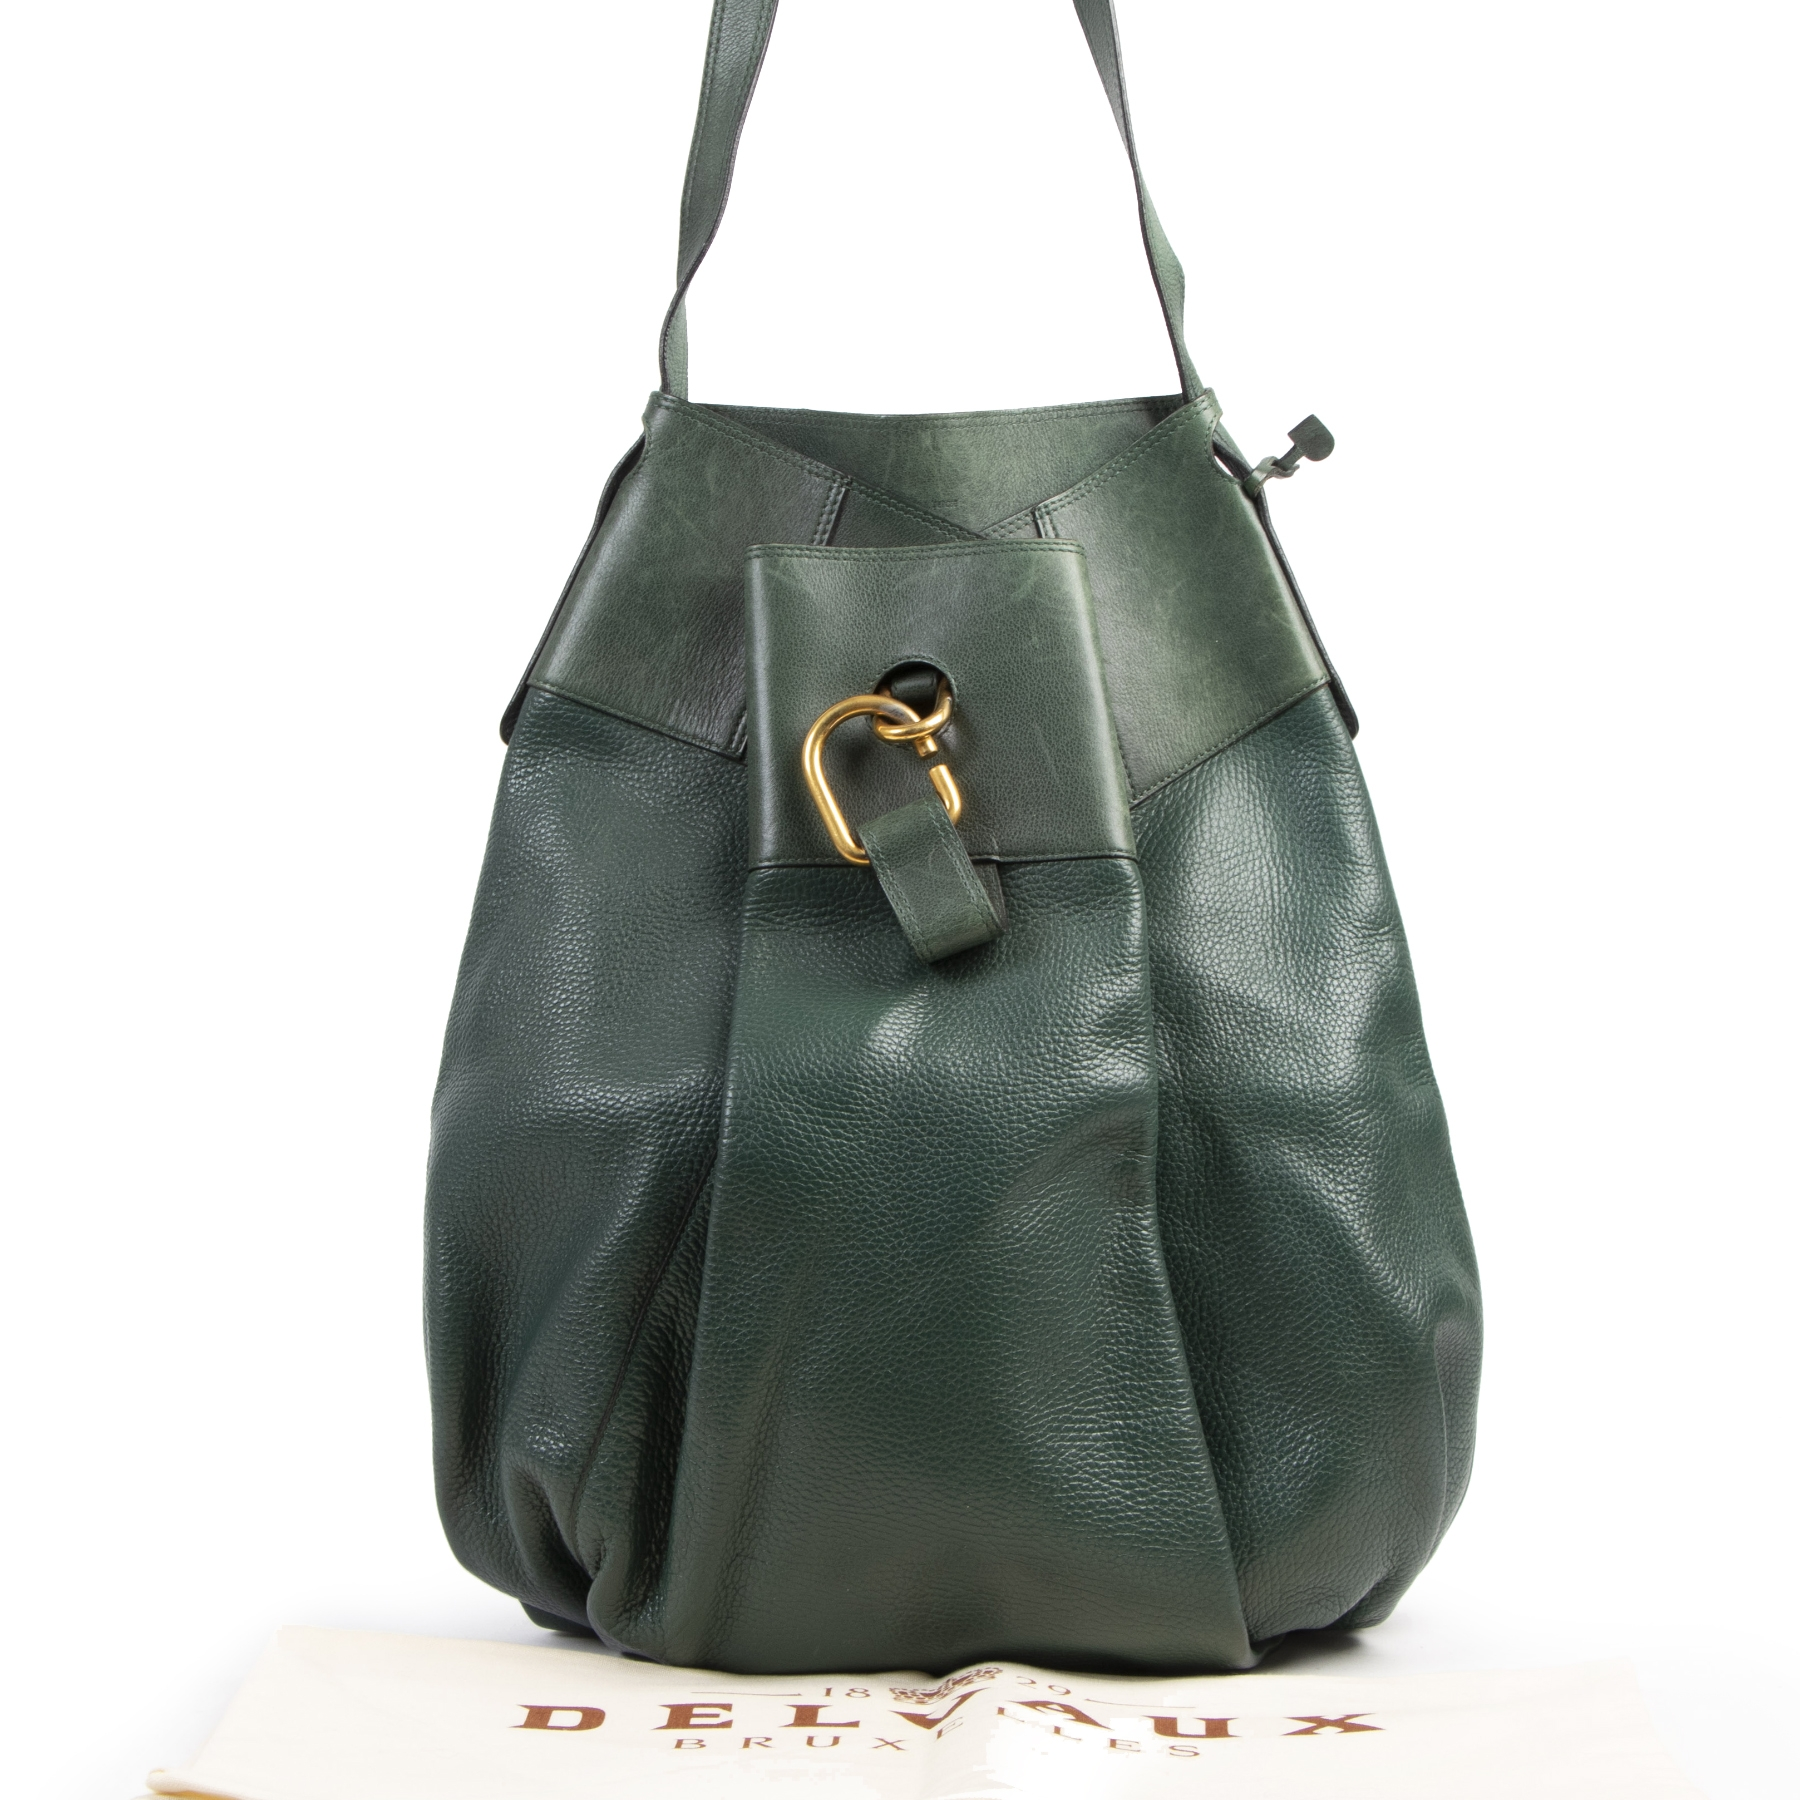 Authentieke tweedehands vintage Delvaux Green Faust Shoulder Bag koop online webshop LabelLOV